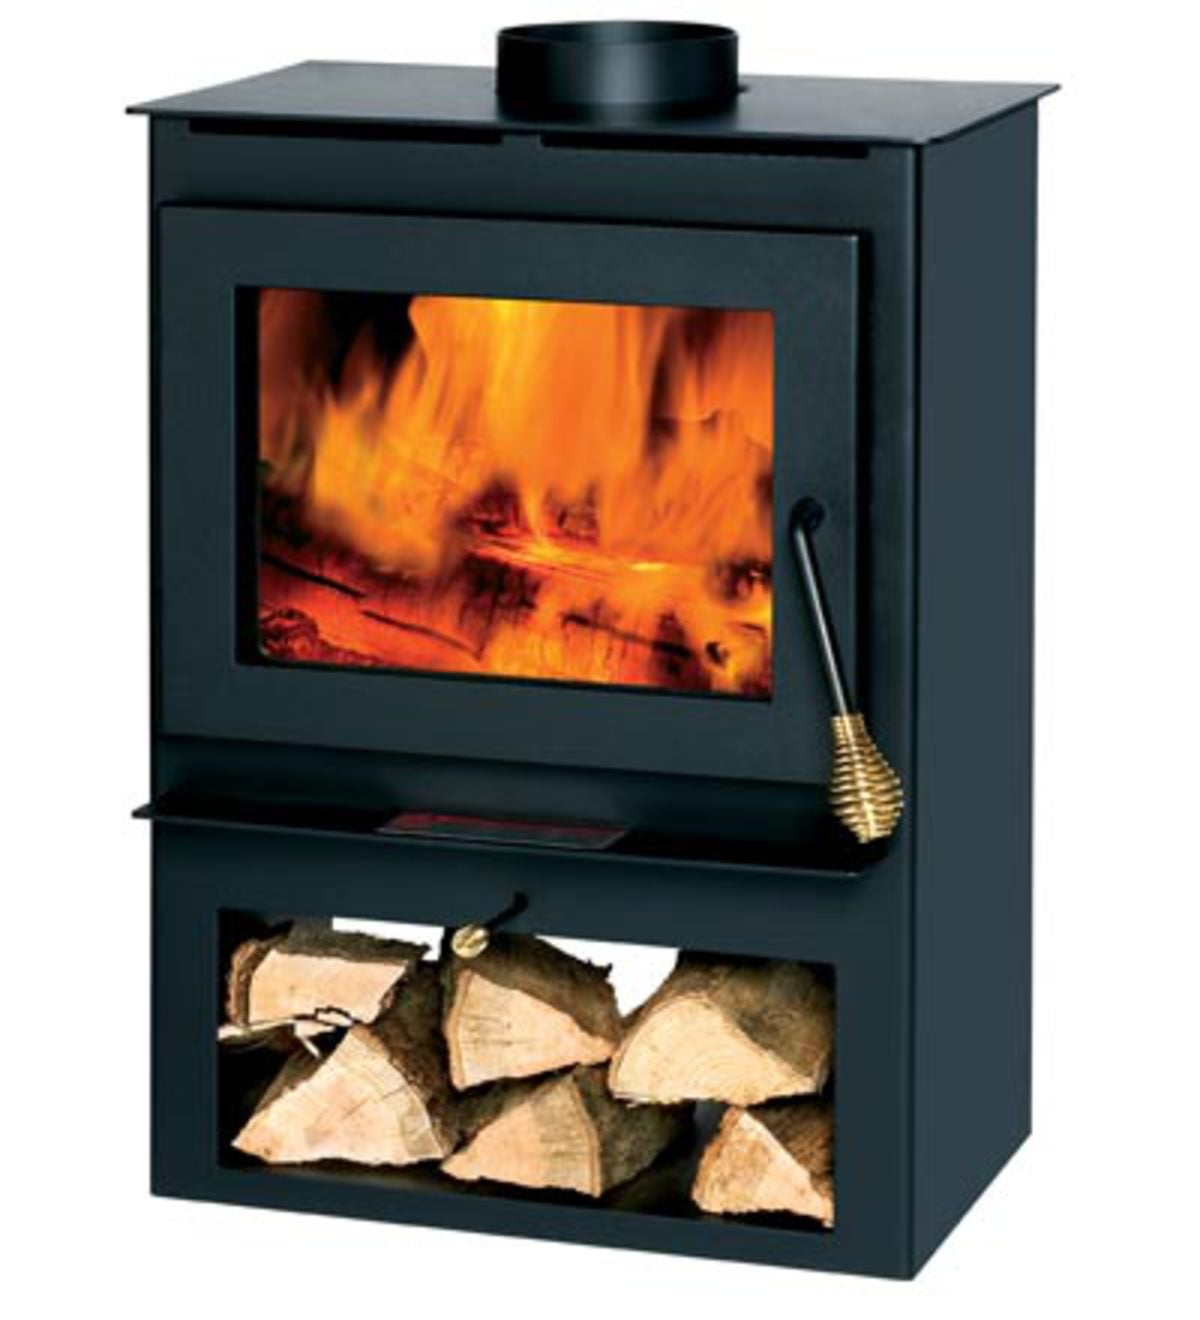 Freestanding Wood Stove Plowhearth